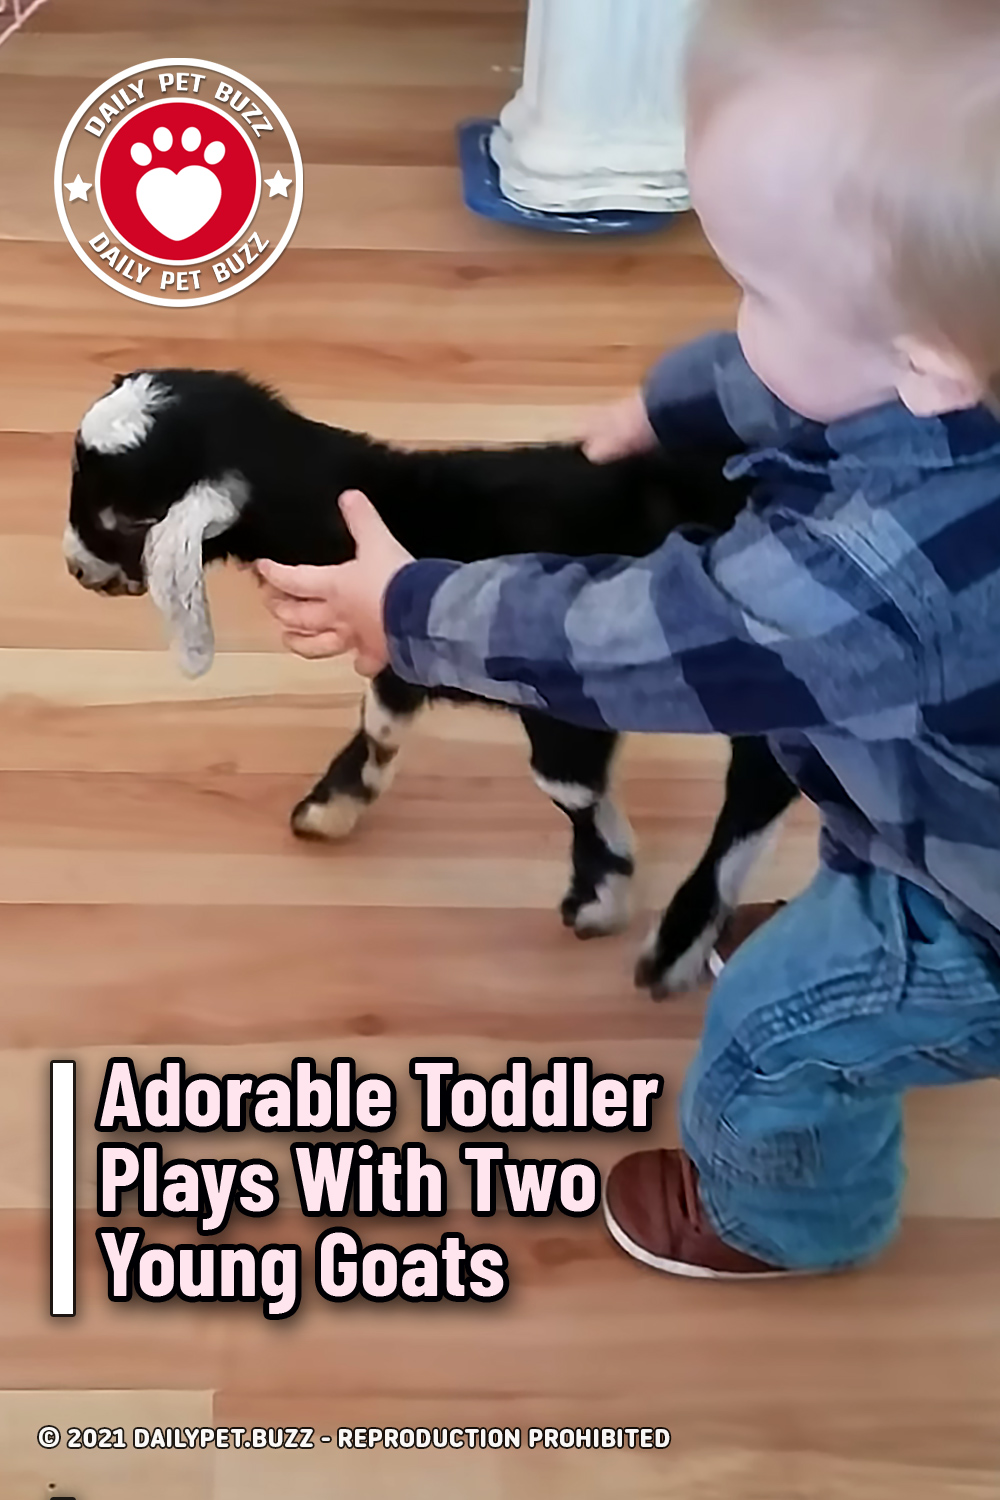 Adorable Toddler Plays With Two Young Goats